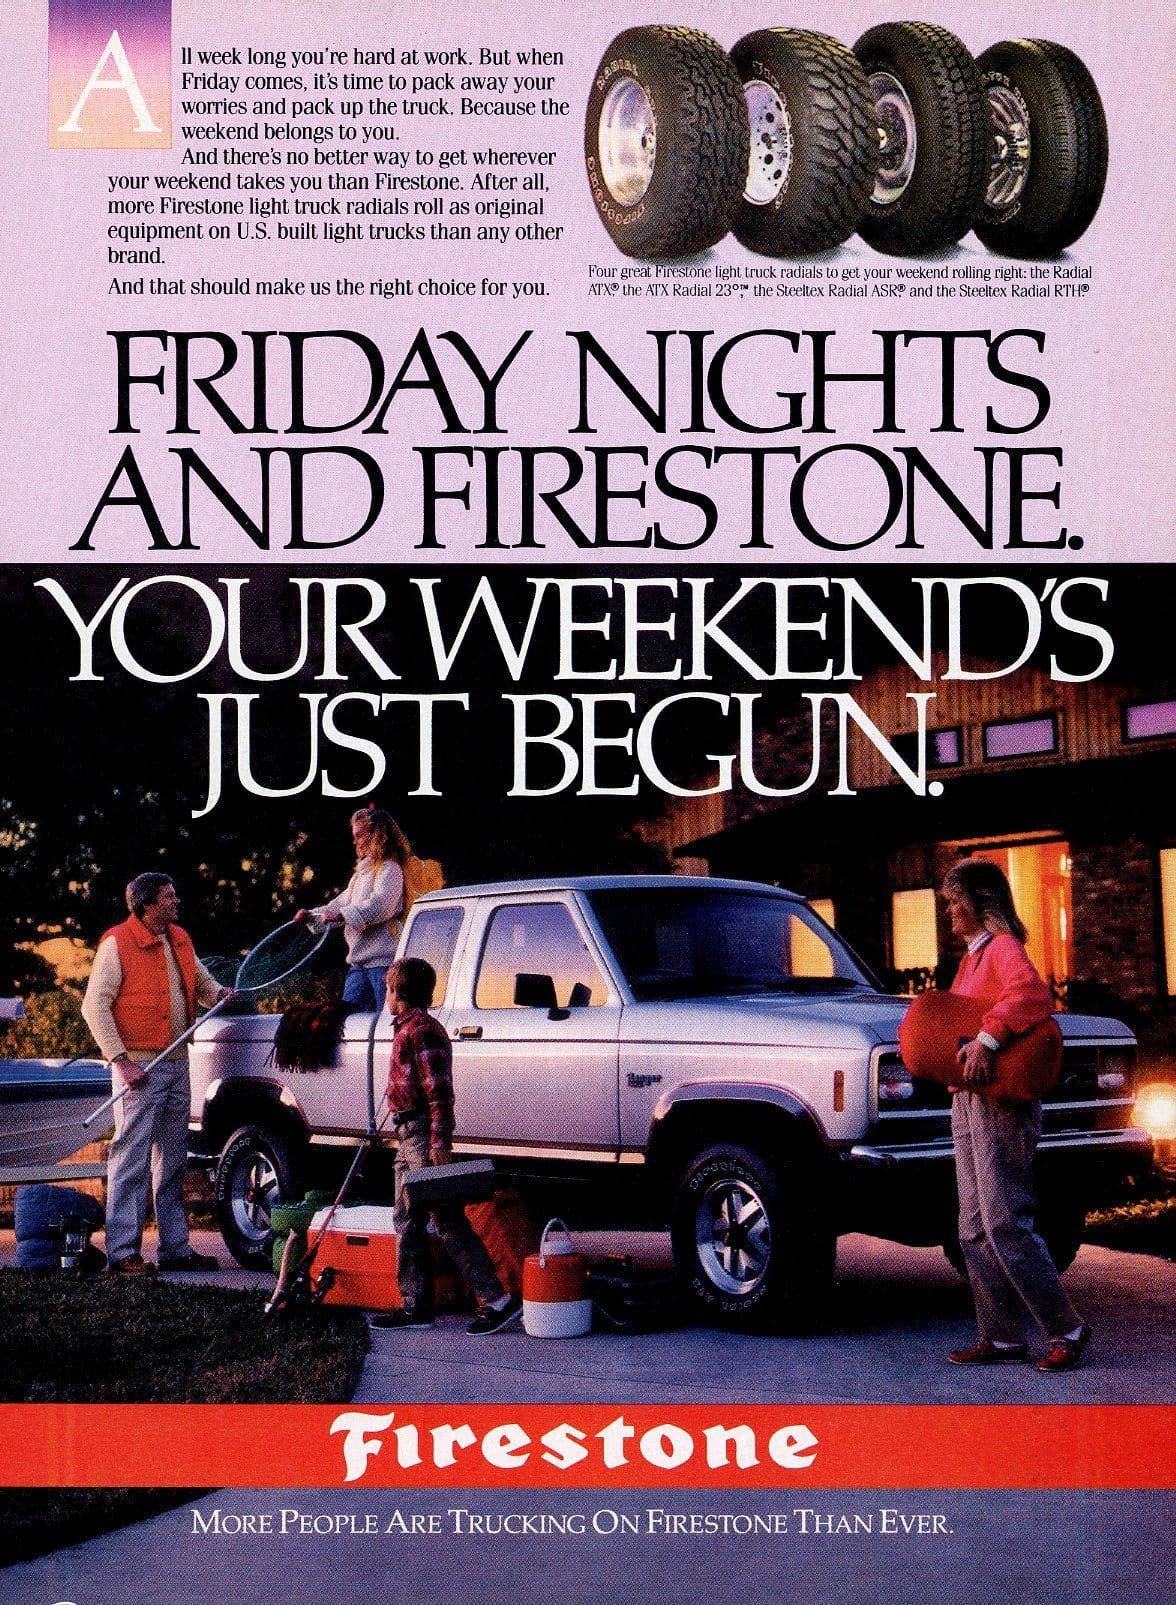 1980's Firestone Tires Advertisement - Transportation Wall Decor - Truck Lover Gift